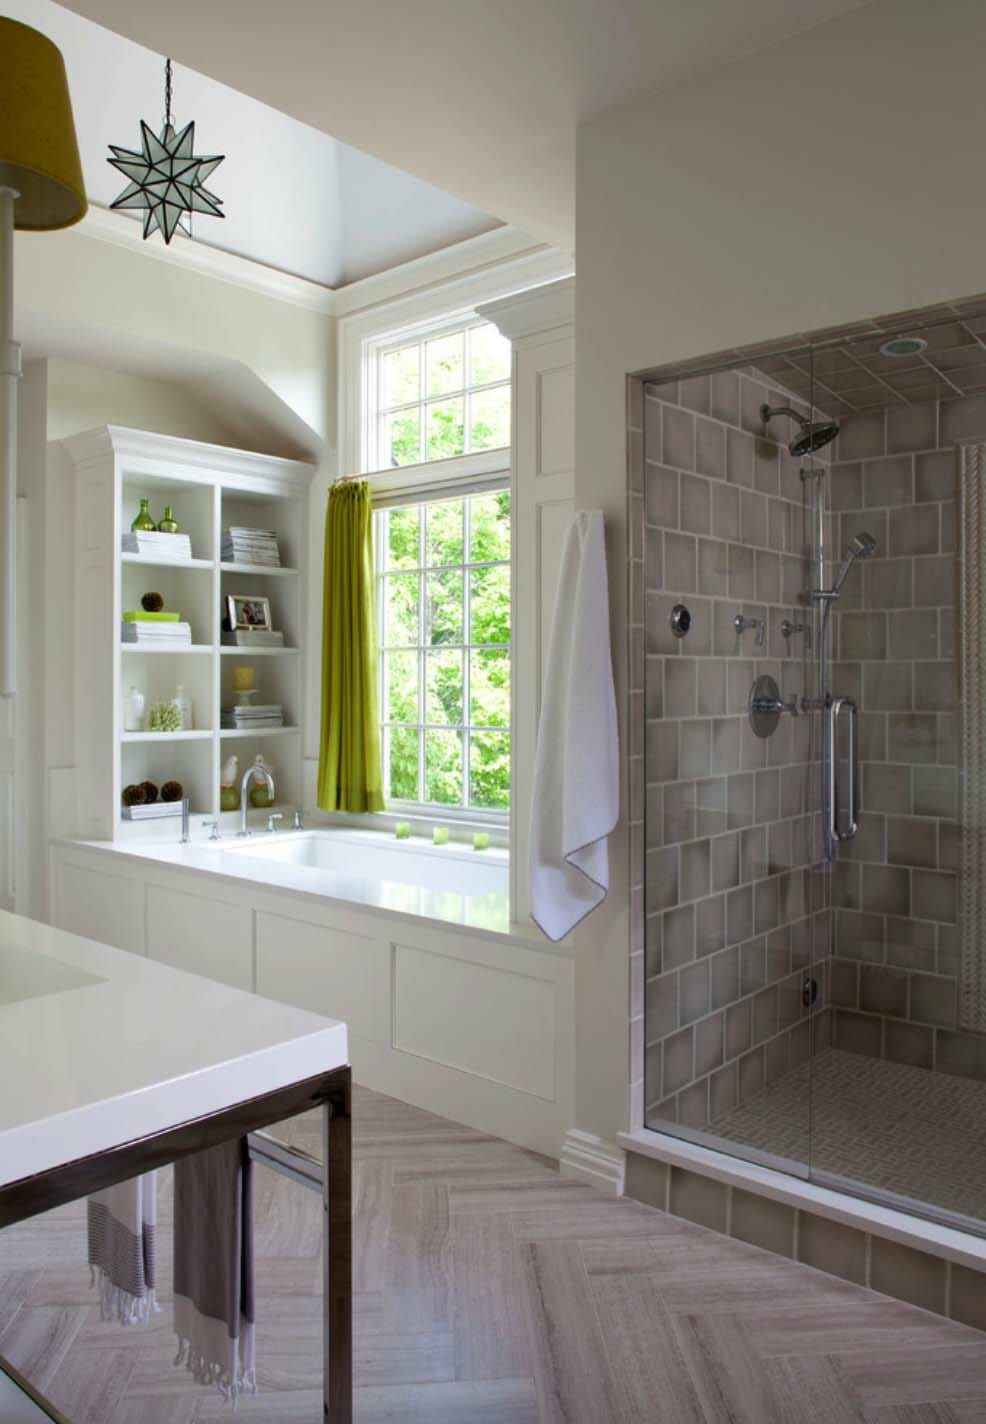 Renovated Home In Colorado Unveils A New England Chic Style Budget Bathroom Remodel Bathrooms Remodel Bathroom Design Luxury